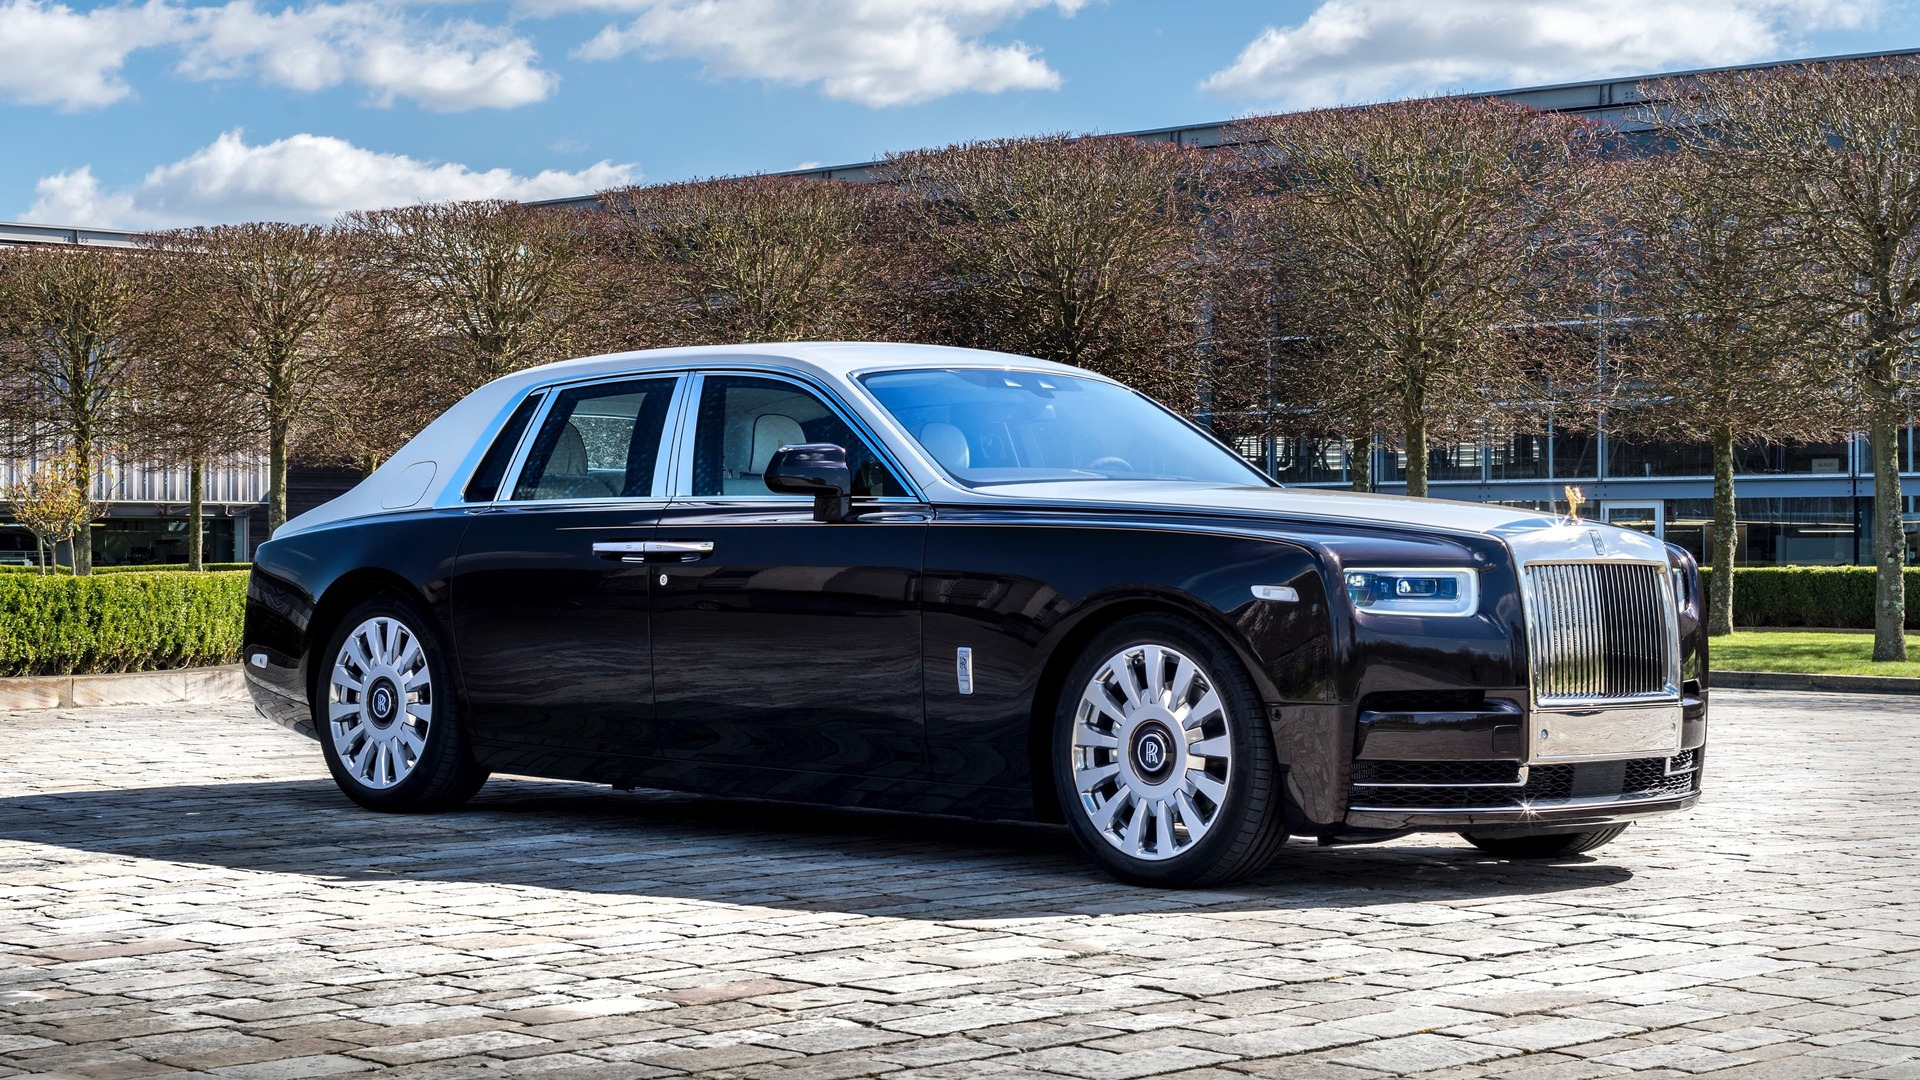 Front side view of smokey quartz Rolls-Royce Phantom standard wheelbase